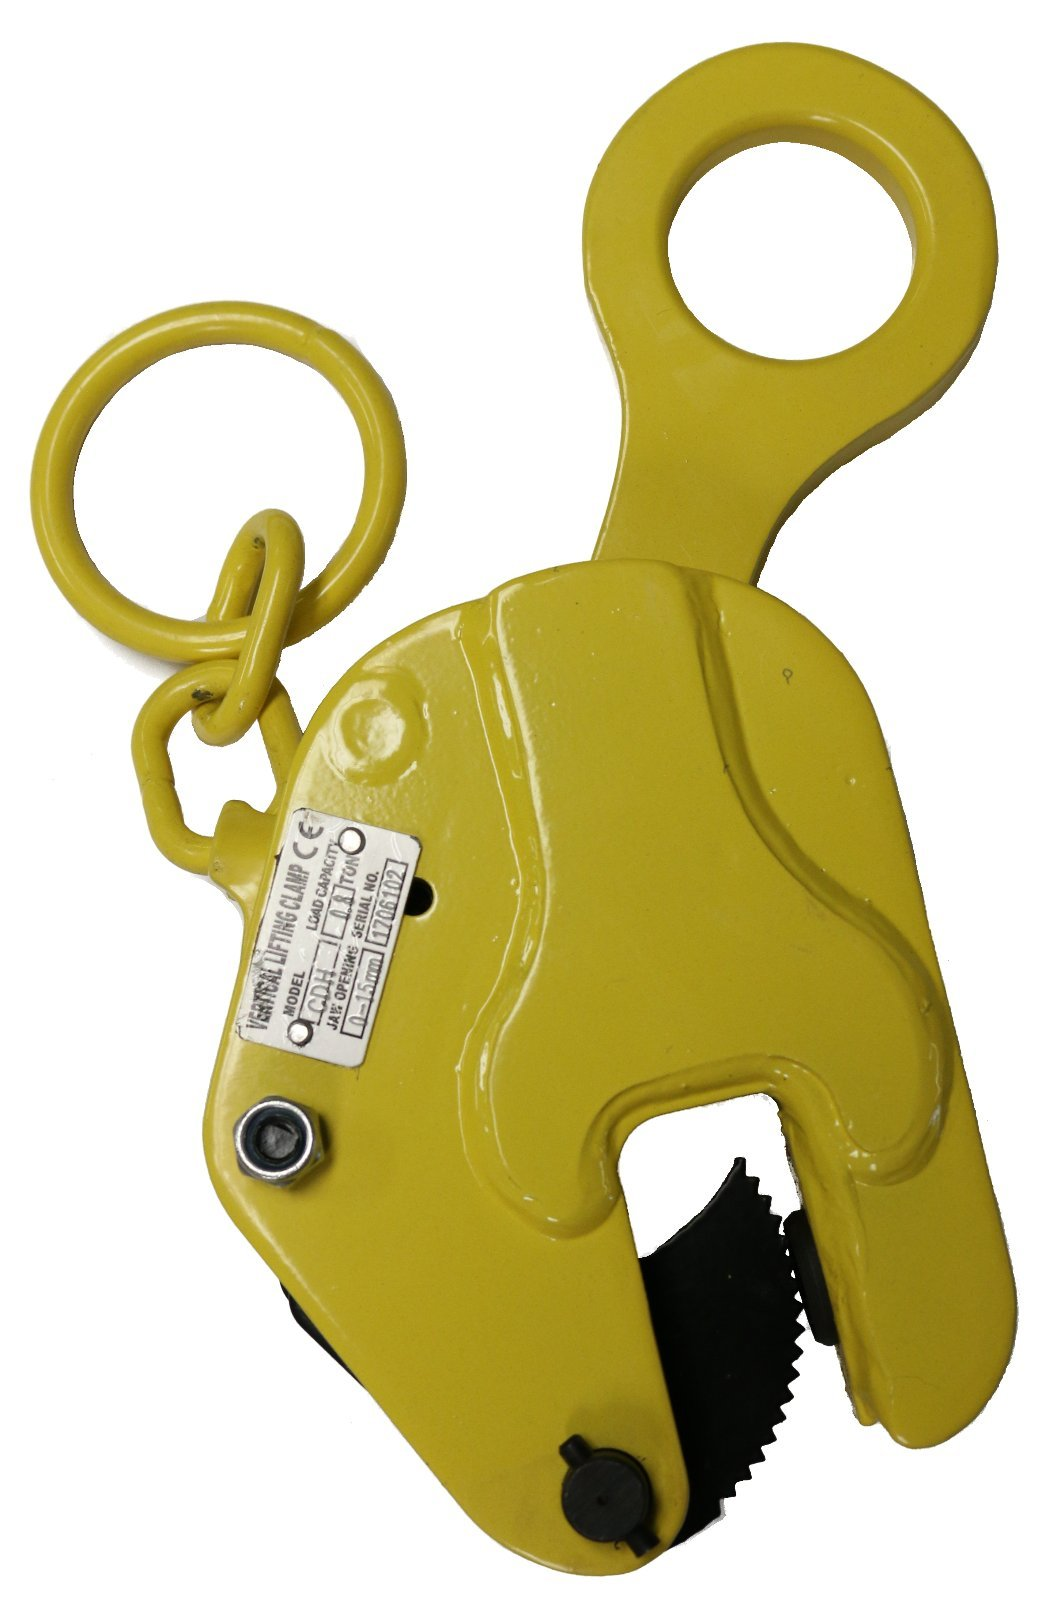 V-Lift Industrial Vertical Plate Lifting Clamp Steel 1763 lb WLL .8T with Lock by V-Lift Industrial